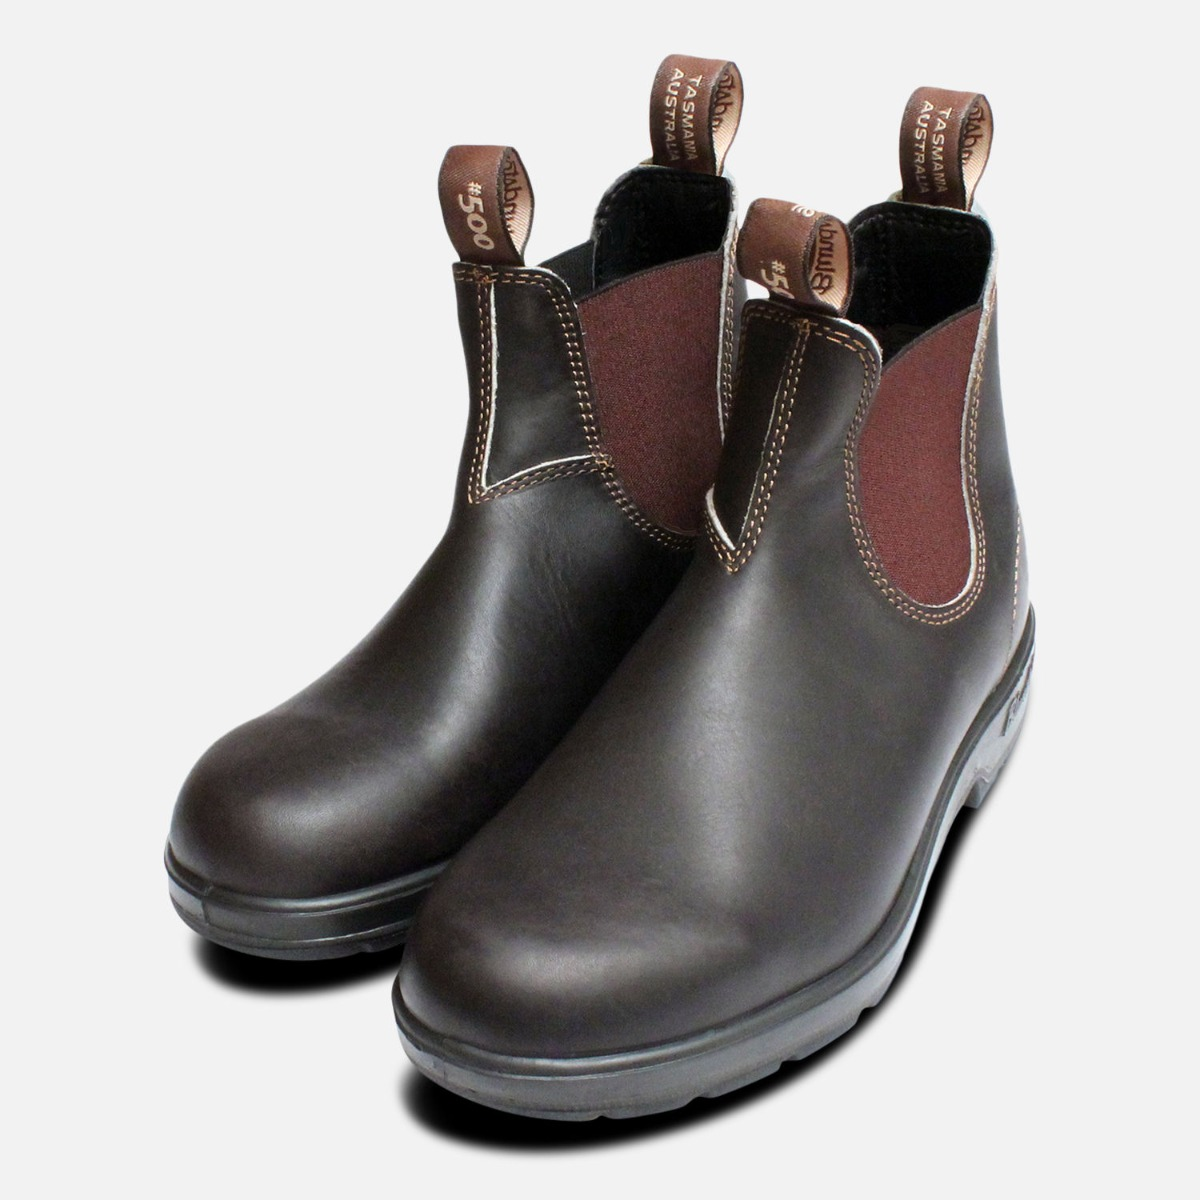 668ea98dd20 Details about Mens Round Toe Stout Brown Blundstone 500 Boots